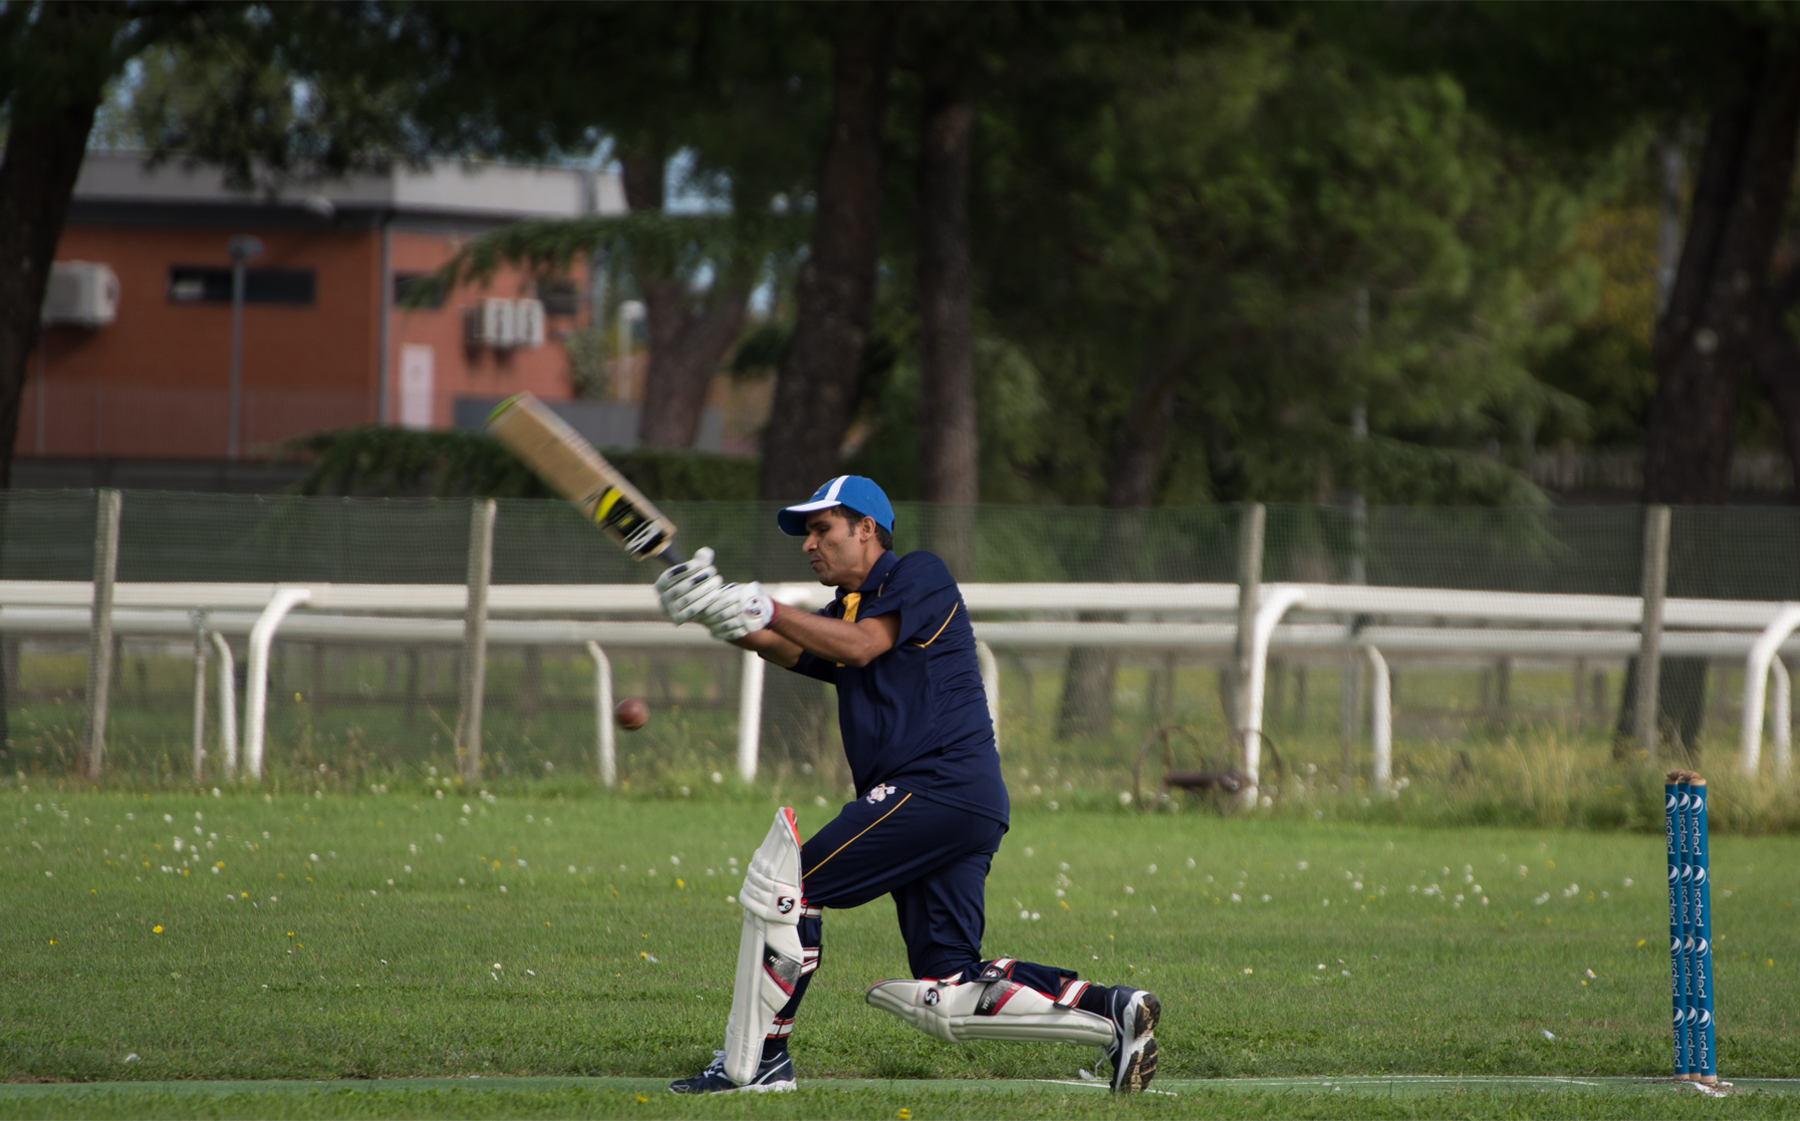 Finding Common Ground on the Cricket Pitch - Regnum Christi